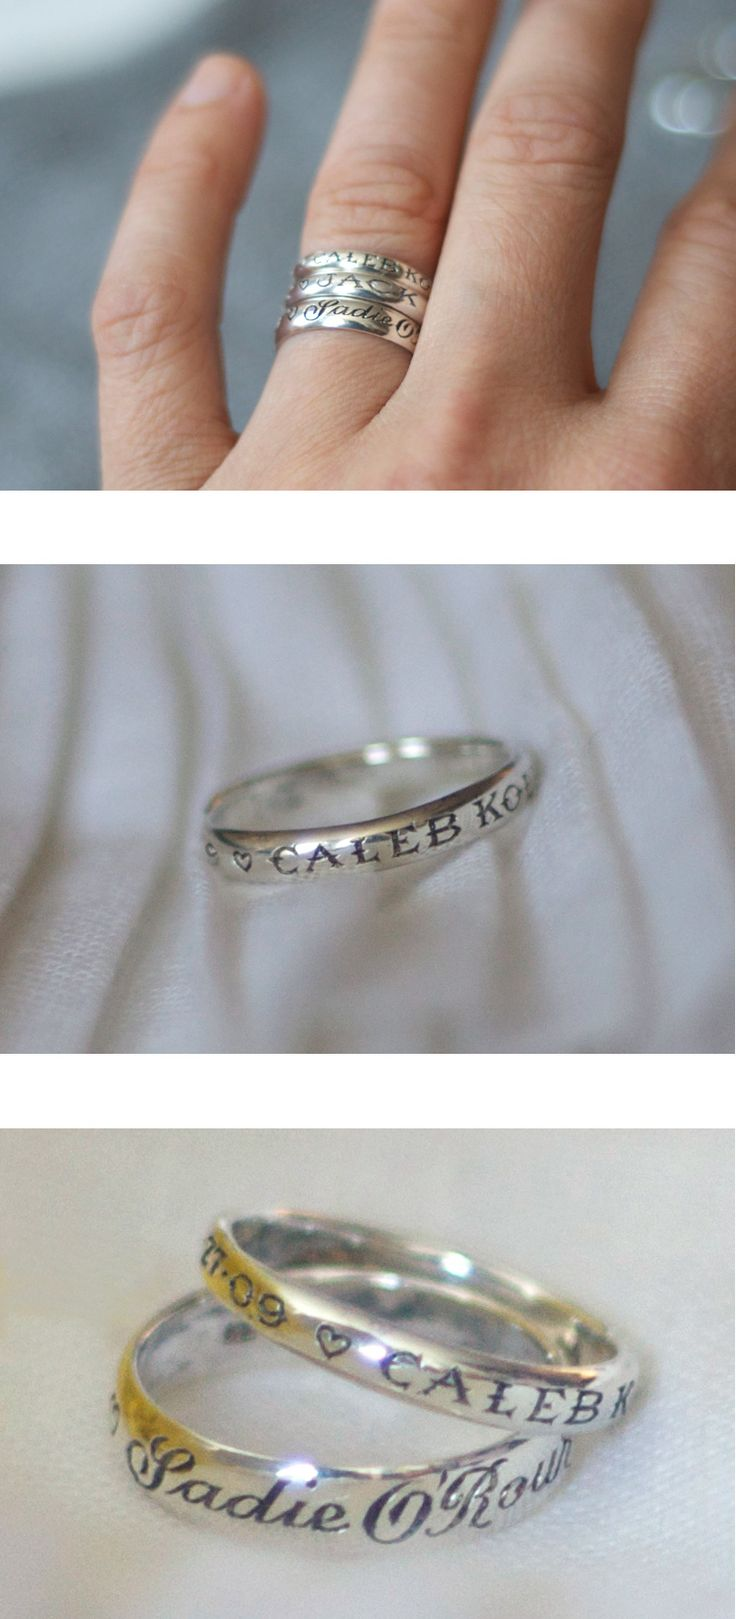 Child's name and date of birth on the ring. Beautiful. Such a great idea!!